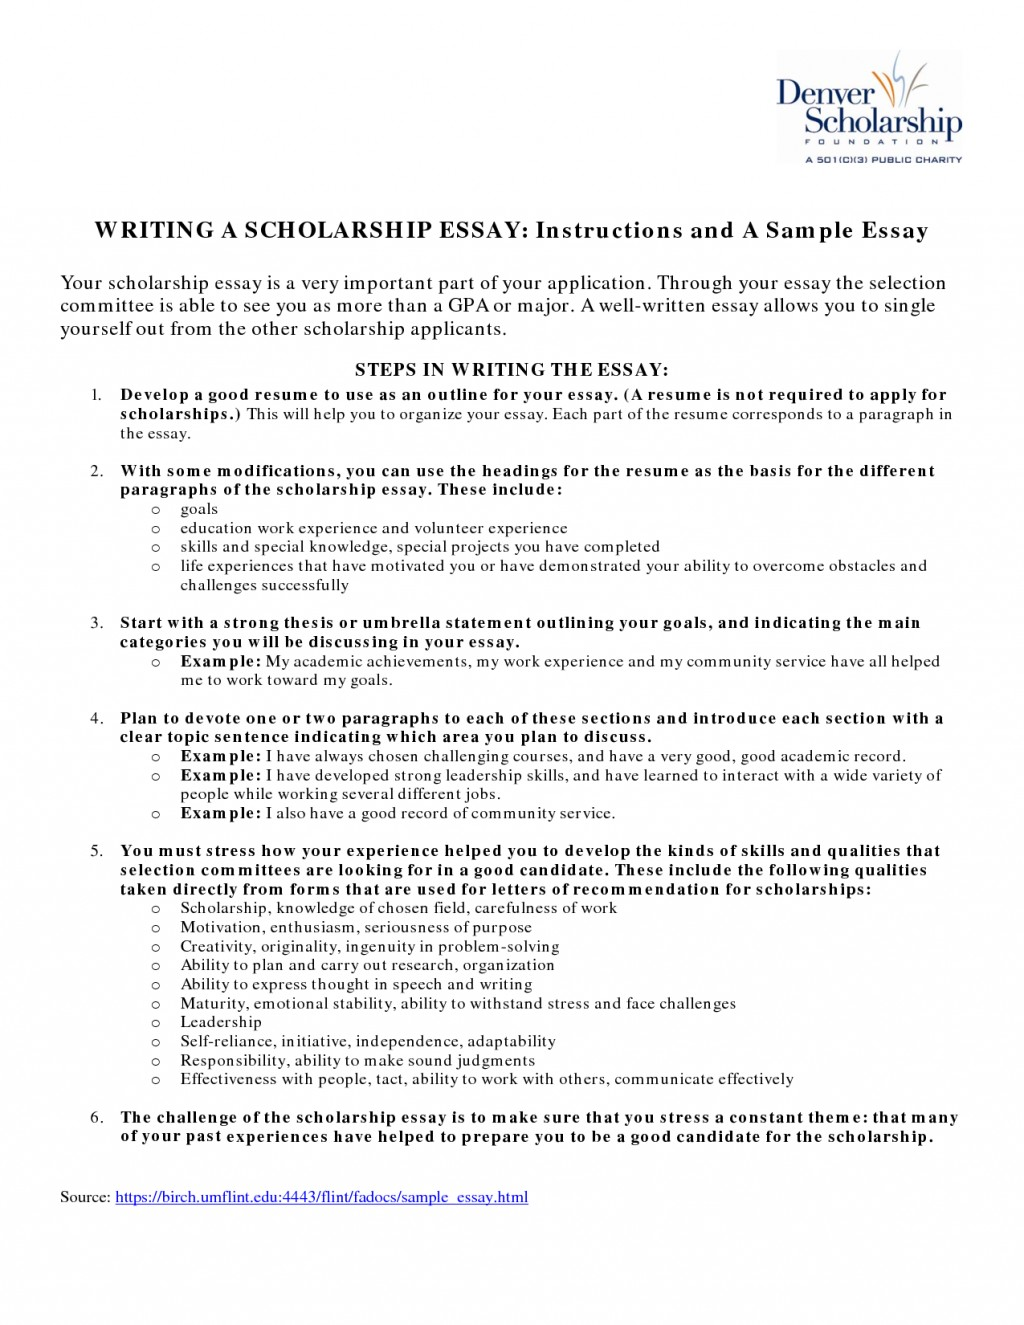 021 Writing Scholarship Essay What To Write About Yourself On Tips For Effective Essays Winning Excellent A Good Keys Large